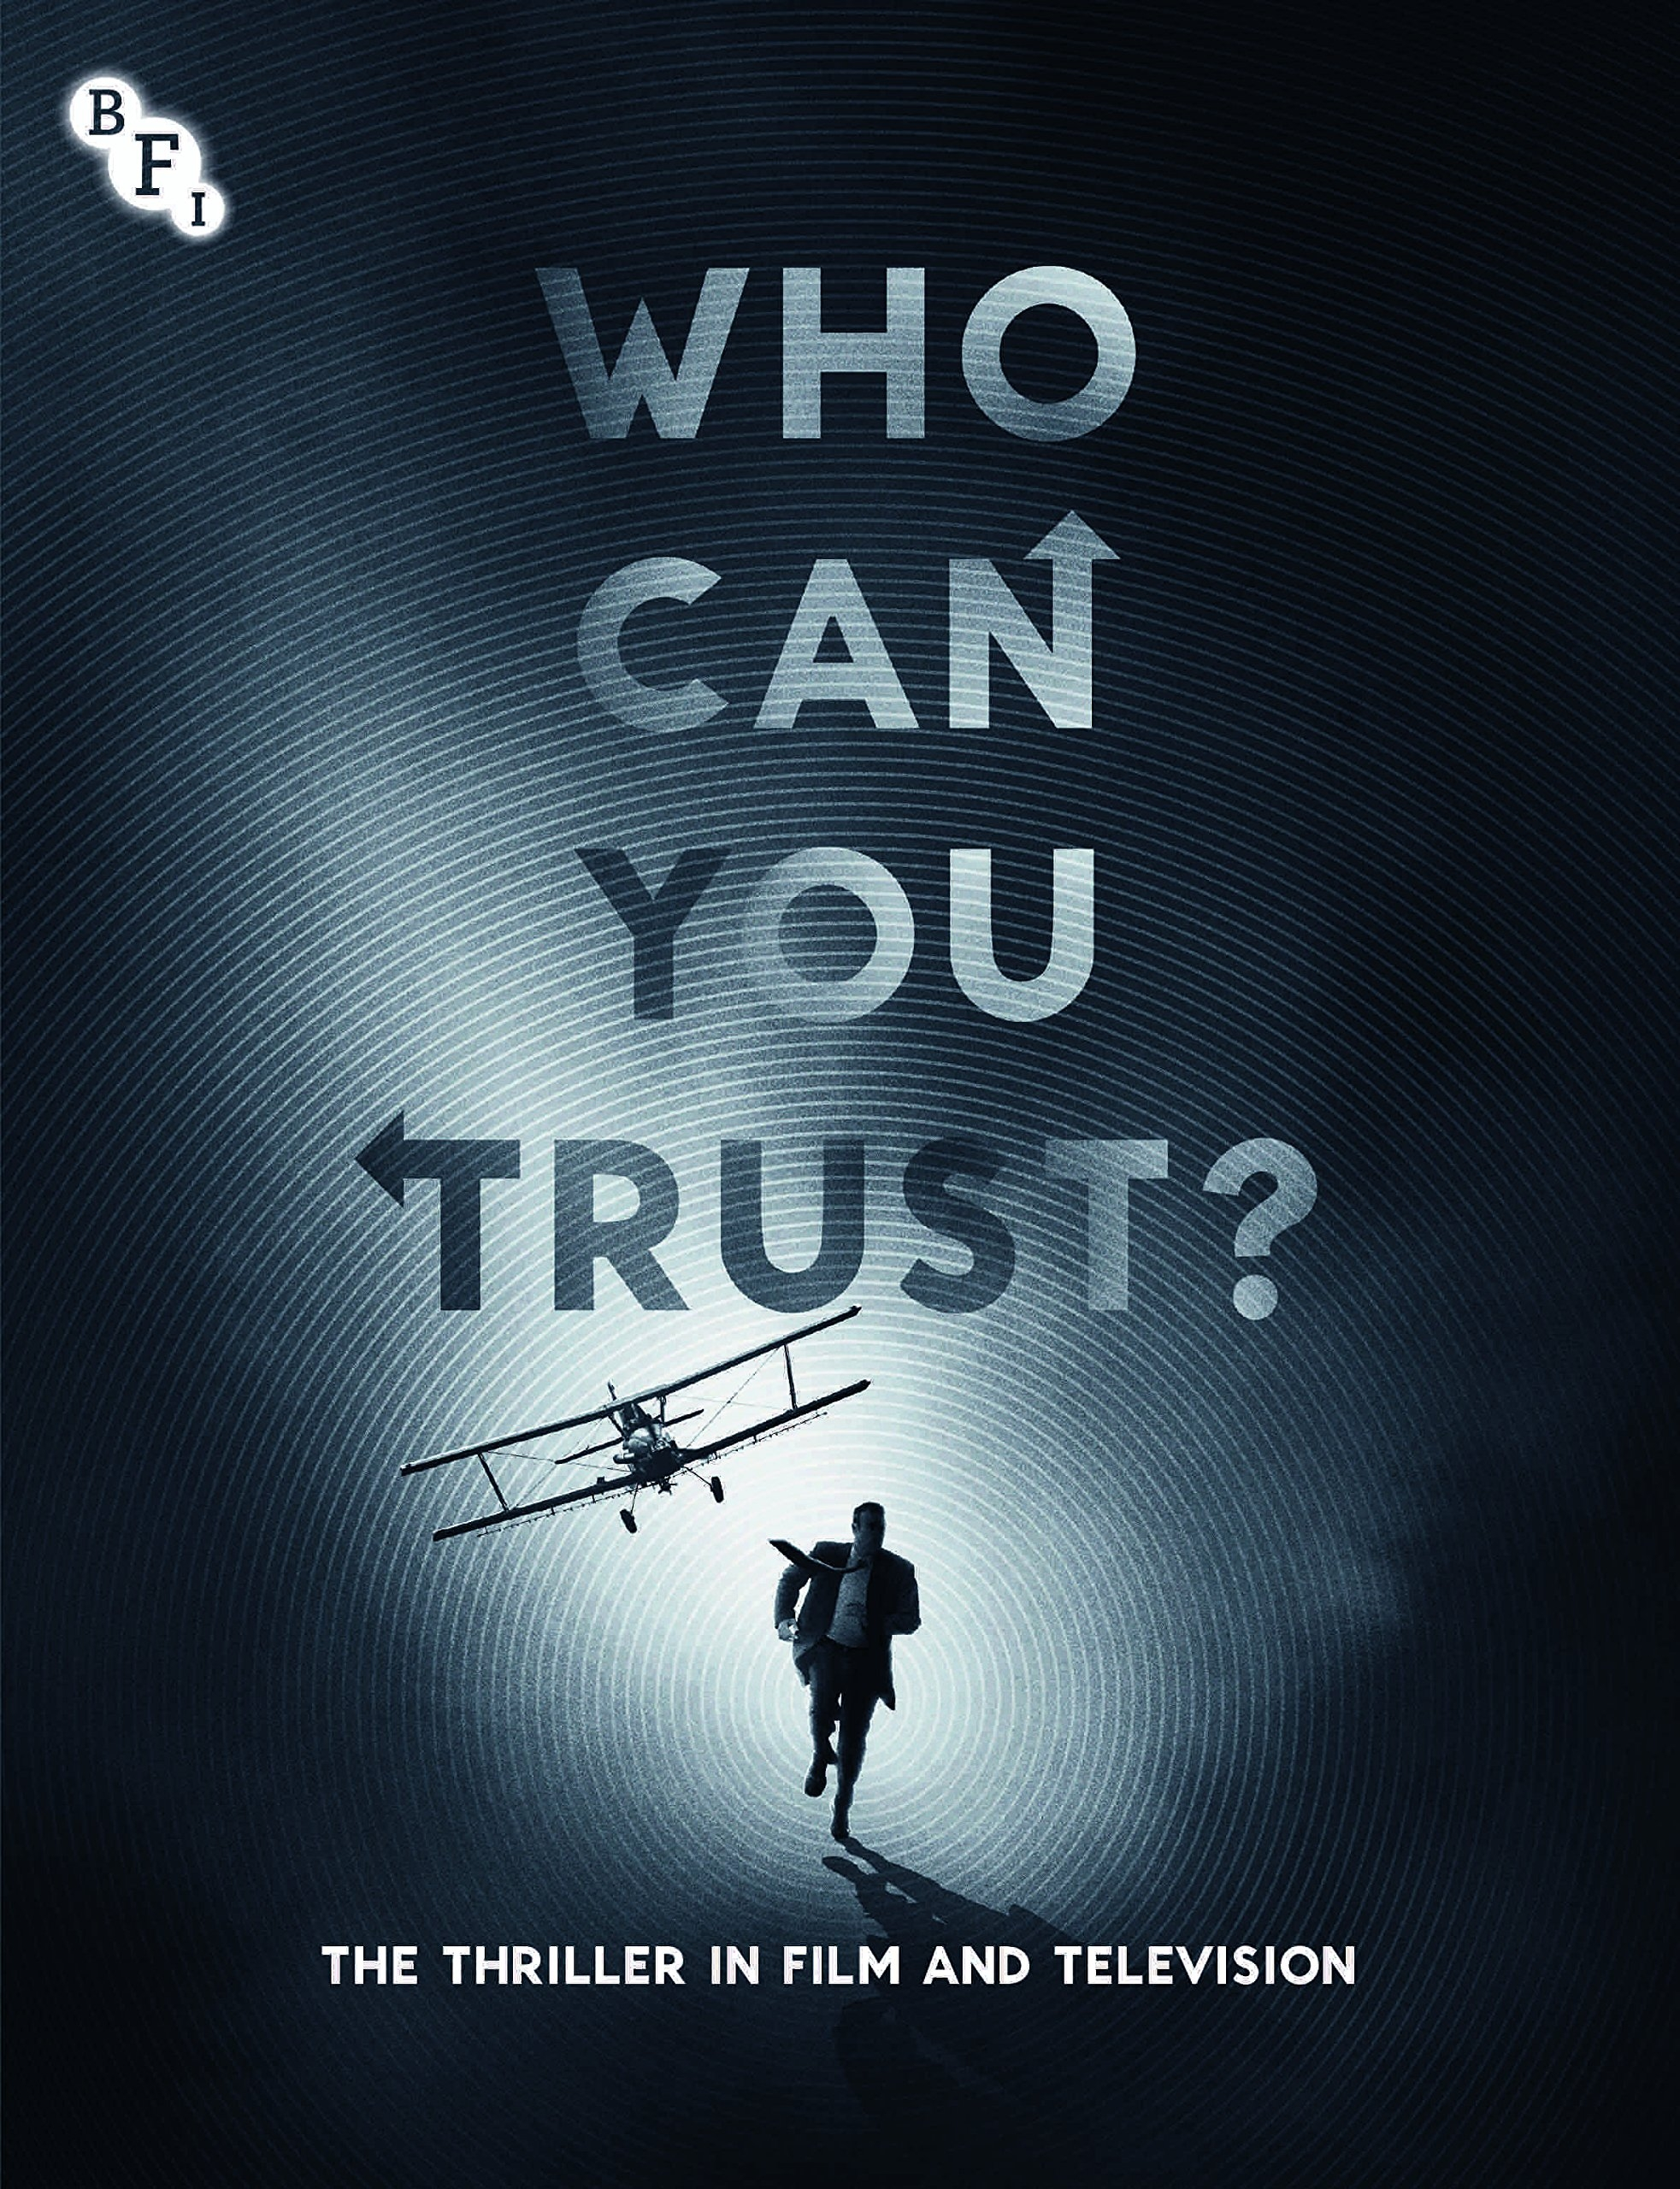 Buy Who Can You Trust?: The Thriller in Film and Television (A BFI Compendium)